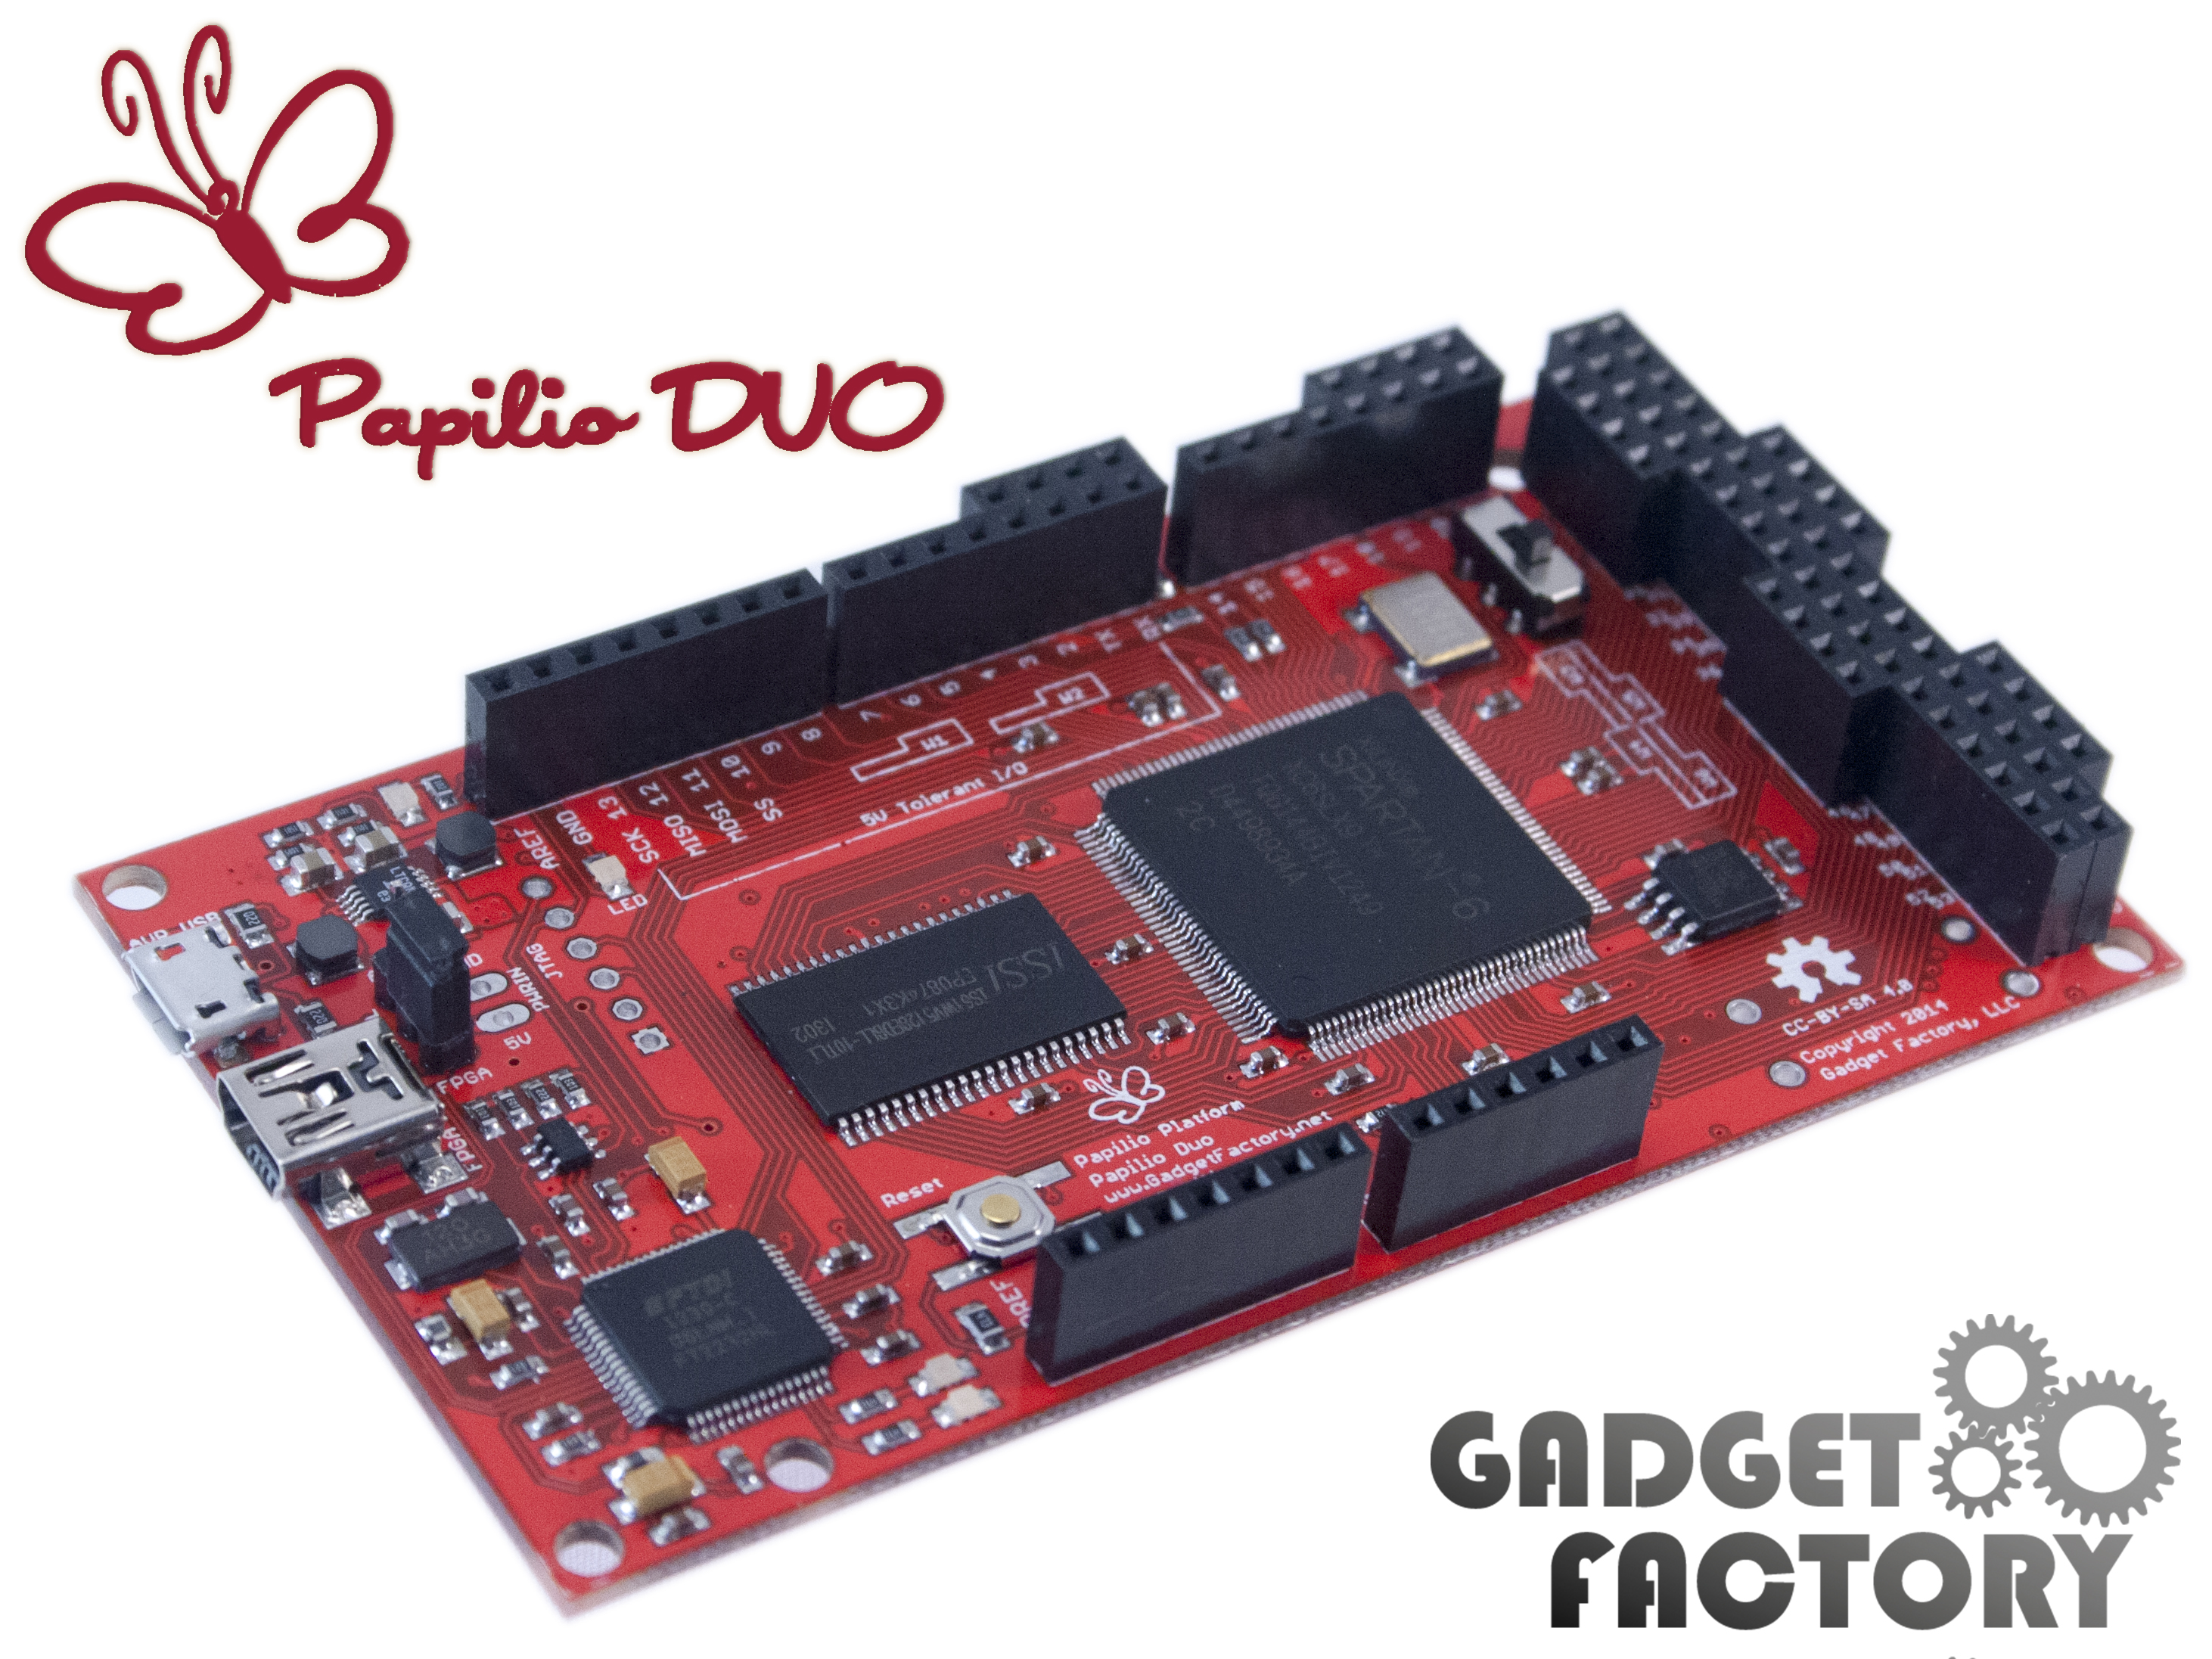 Papilioduohardwareguide Acts As An Output Of The Circuit Click To View Fullsize Picture Papilio Duo Hardware Guide